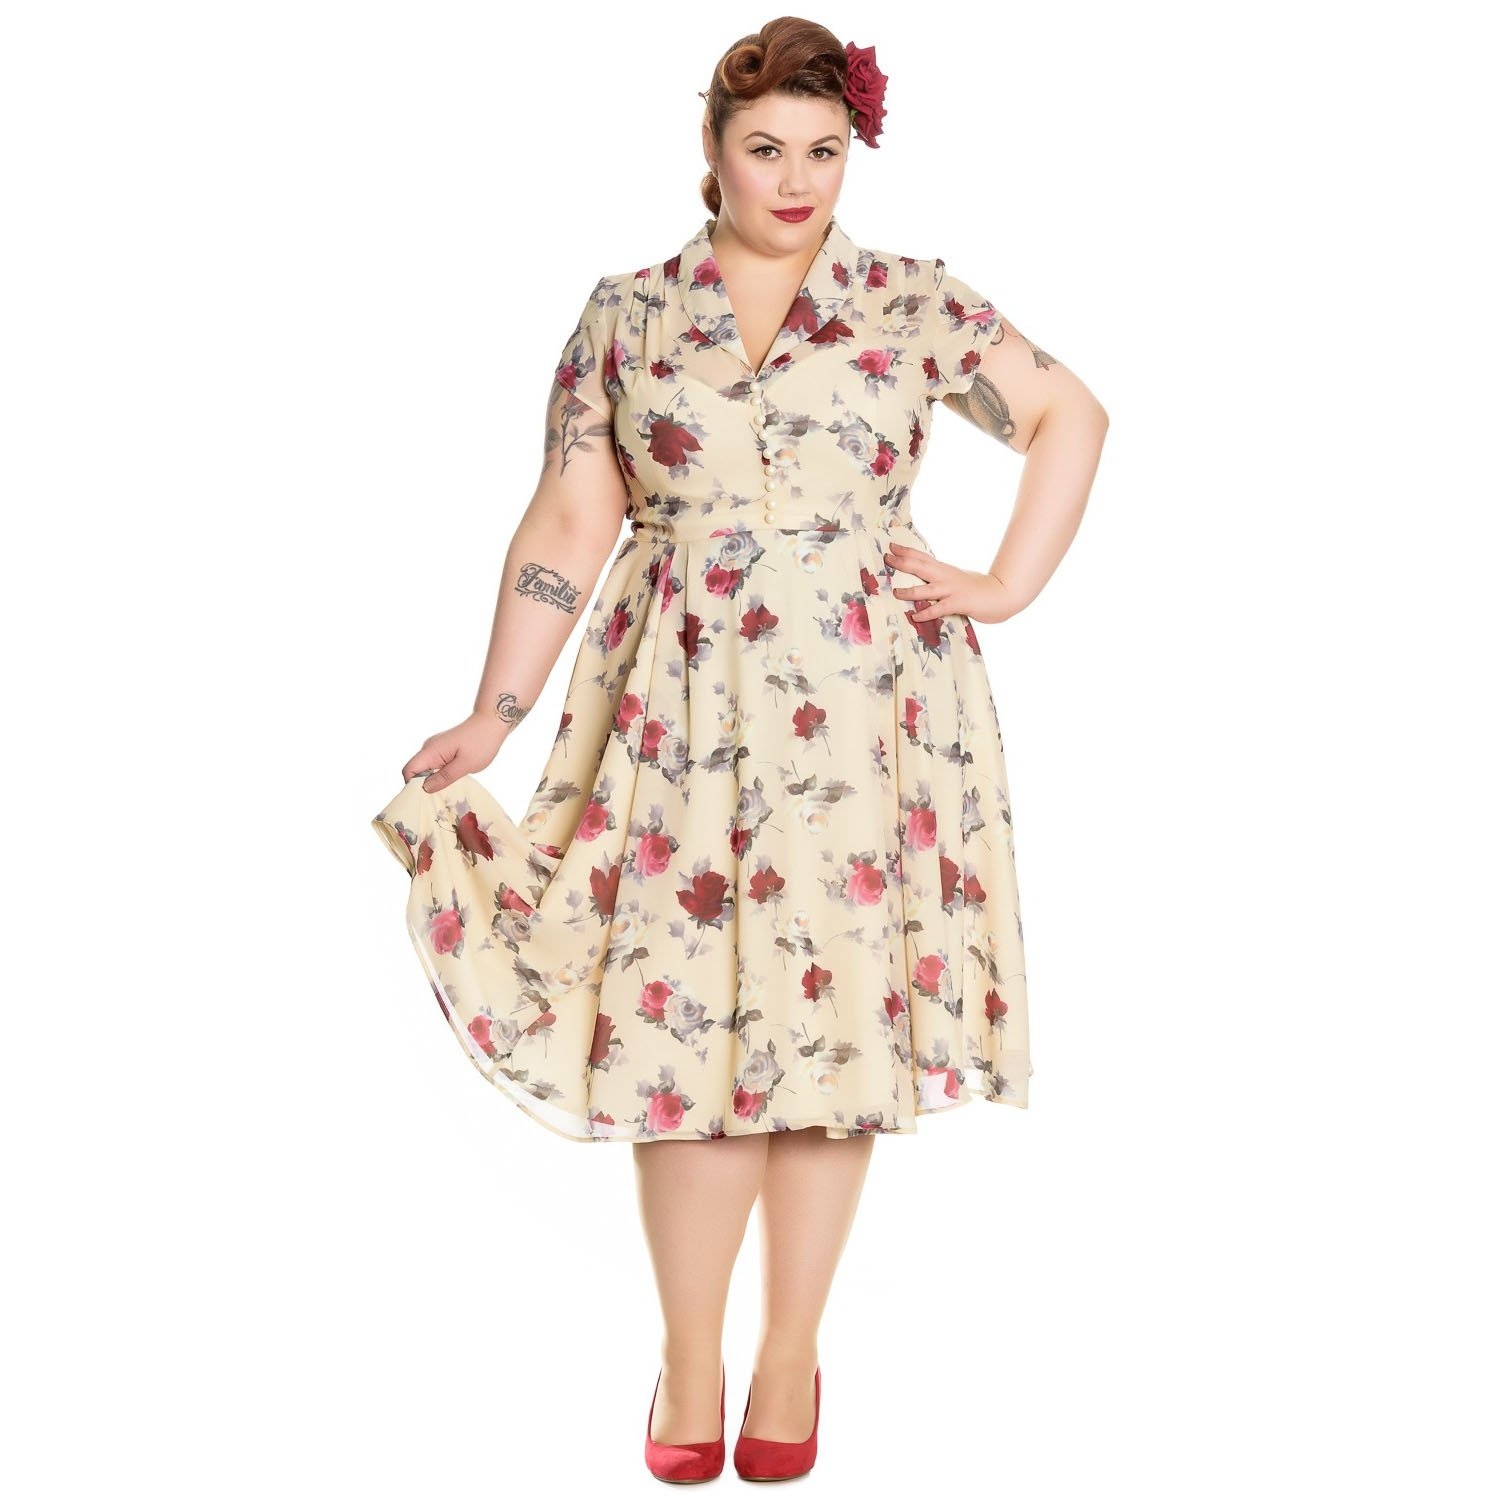 1940s Plus Size Clothing: Dresses History Hell Bunny Leah Cream 1940s Wartime WW2 Floral Retro Vintage Victory Dress �25.99 AT vintagedancer.com